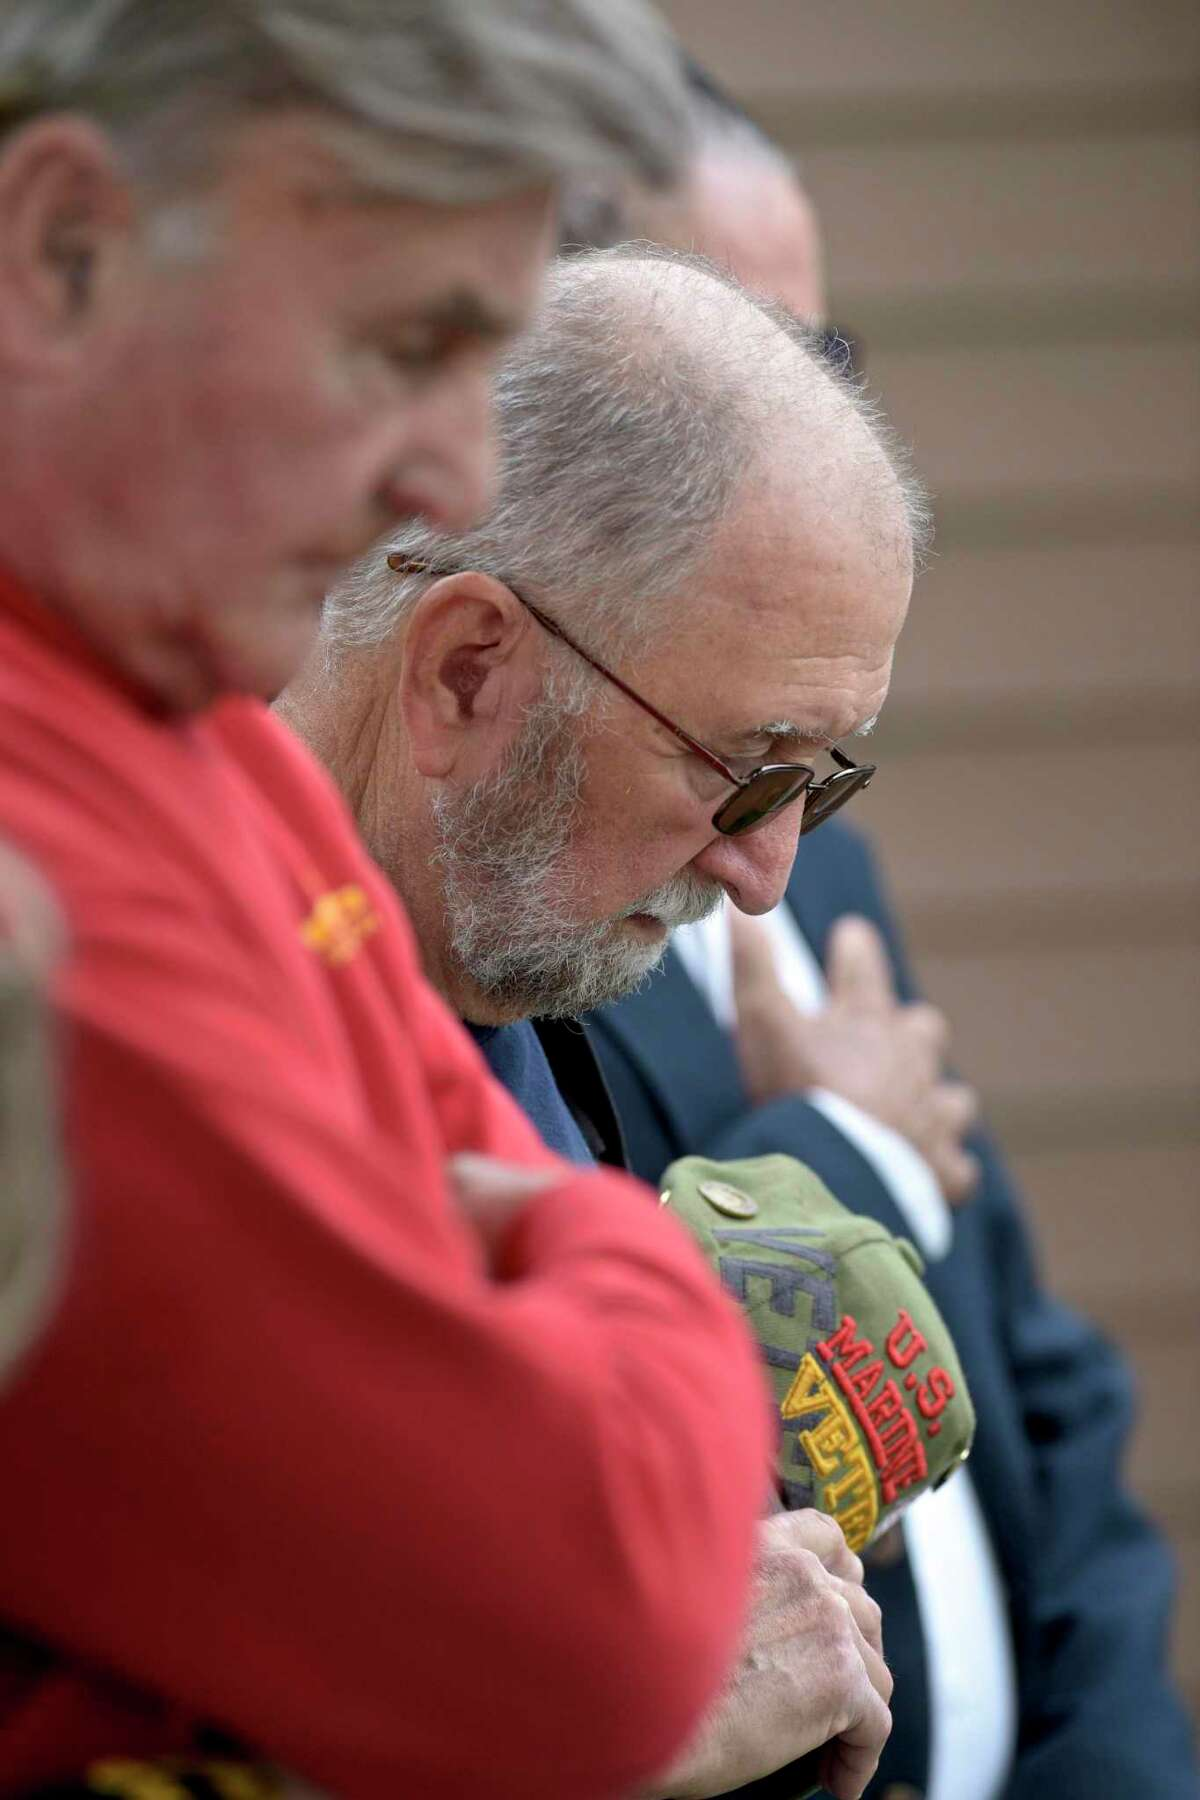 Veteran Richard Godfrey, of Bethel, lowers his head during a moment of slience during a Memorial Day ceremony at VFW Post 149 in Danbury, Conn, on Monday, May 31, 2021. Godfrey is a member of the post.